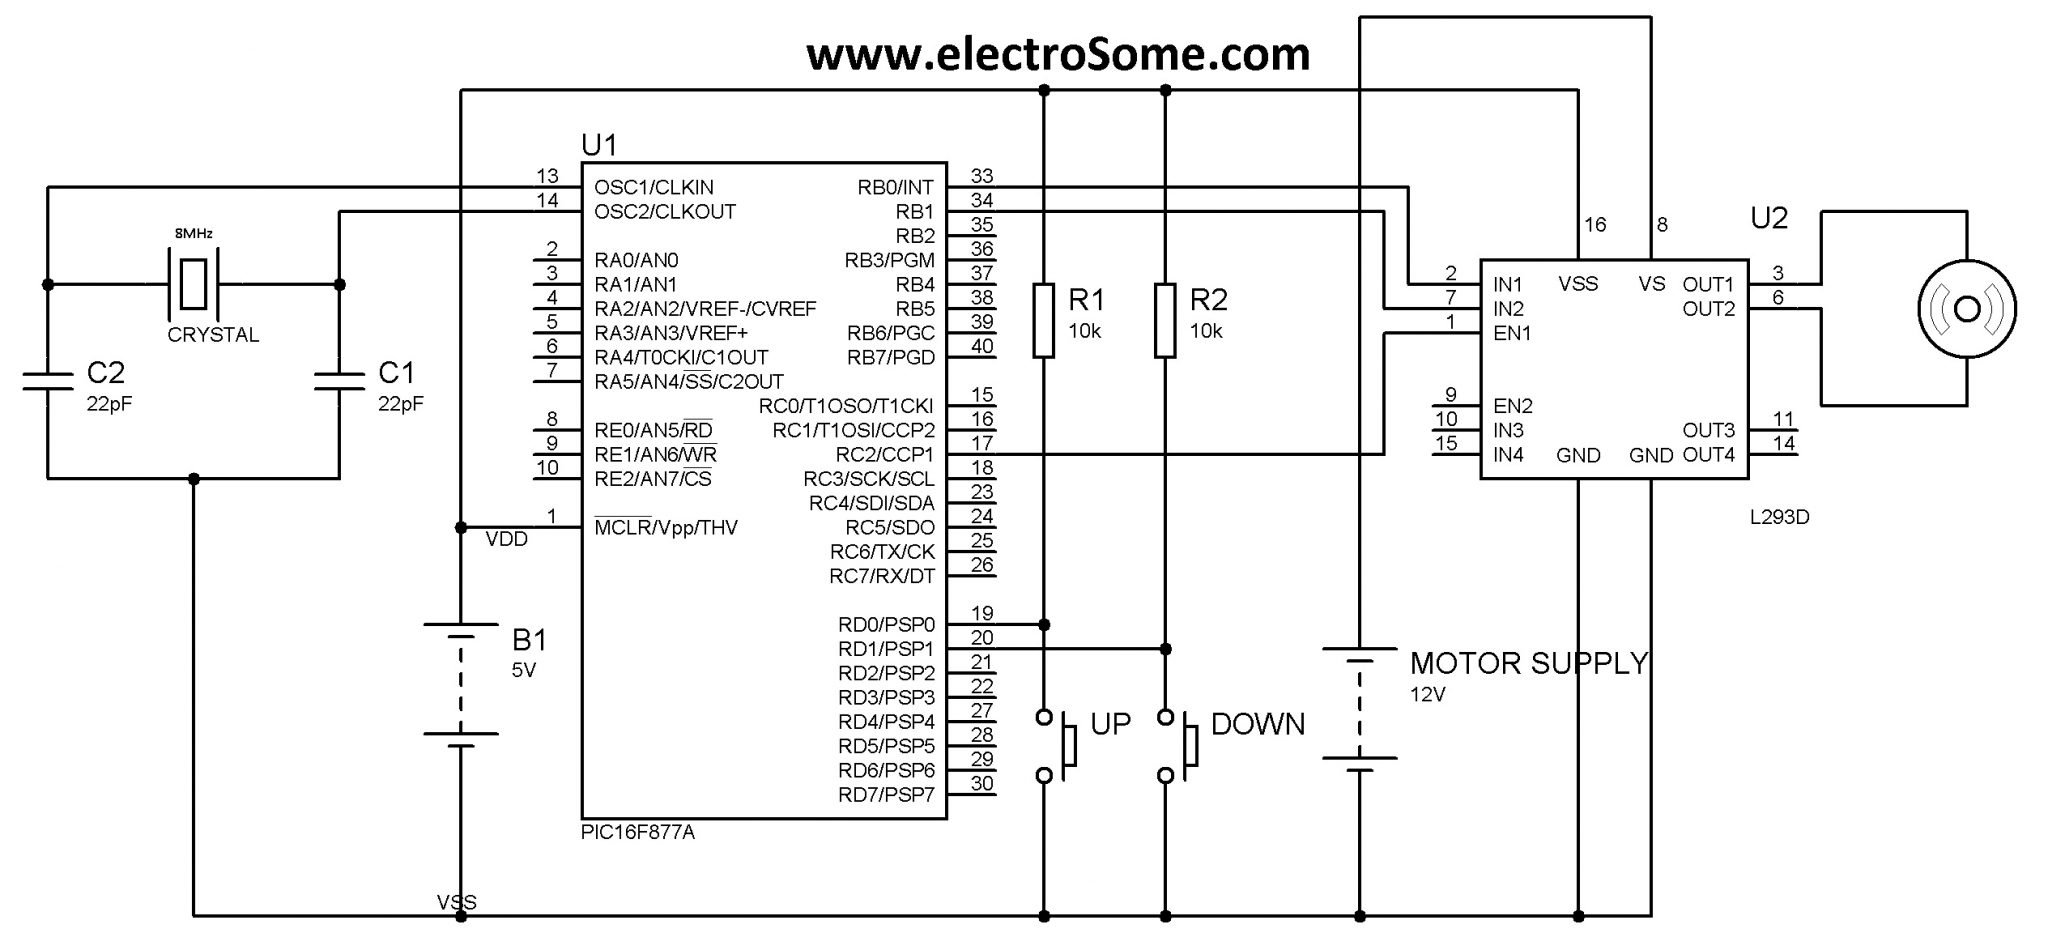 Dc Motor Speed Control Using Pwm With Pic Microcontroller Mikroc Pulse Width Modulator Circuit Position Can Be Easily